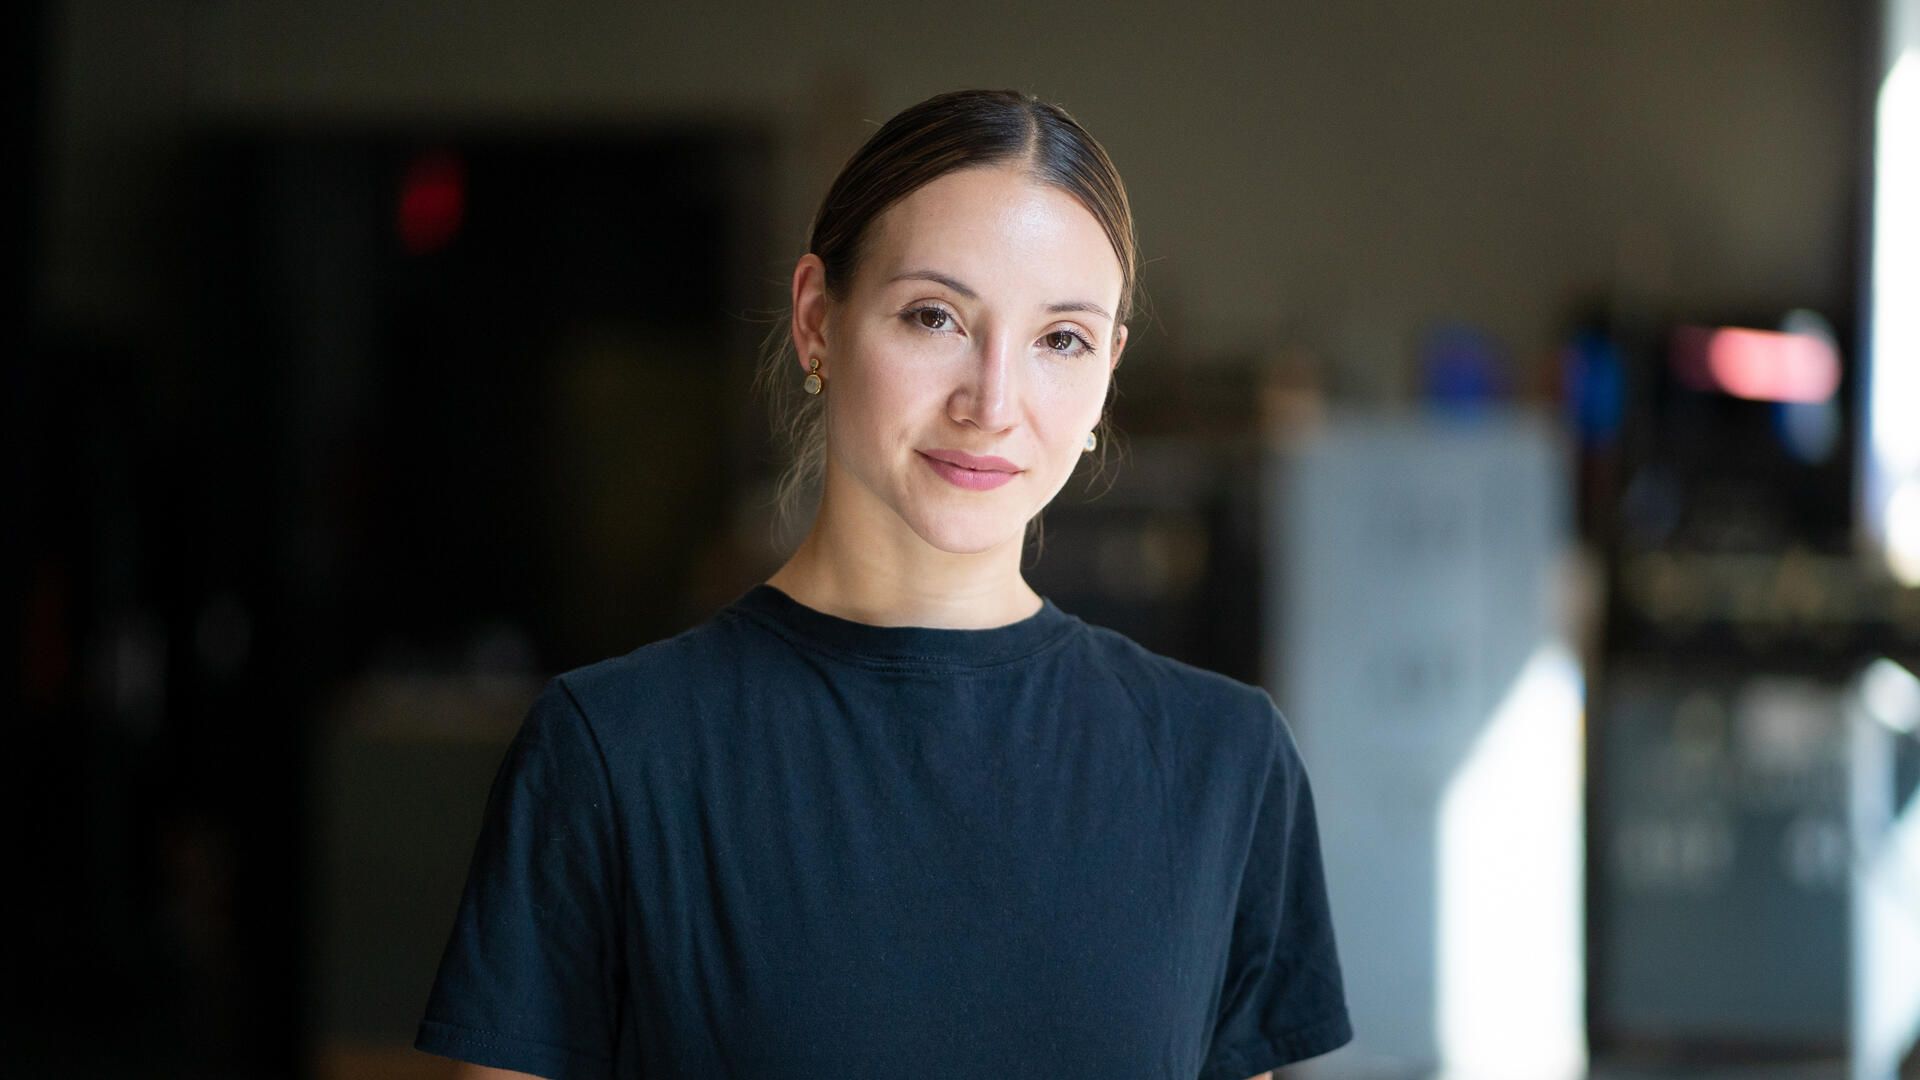 With her hair pulled back and wearing a black t-shirt, Christine Shevchenko looks at the camera for a World Refugee Day 2021 photo shoot,